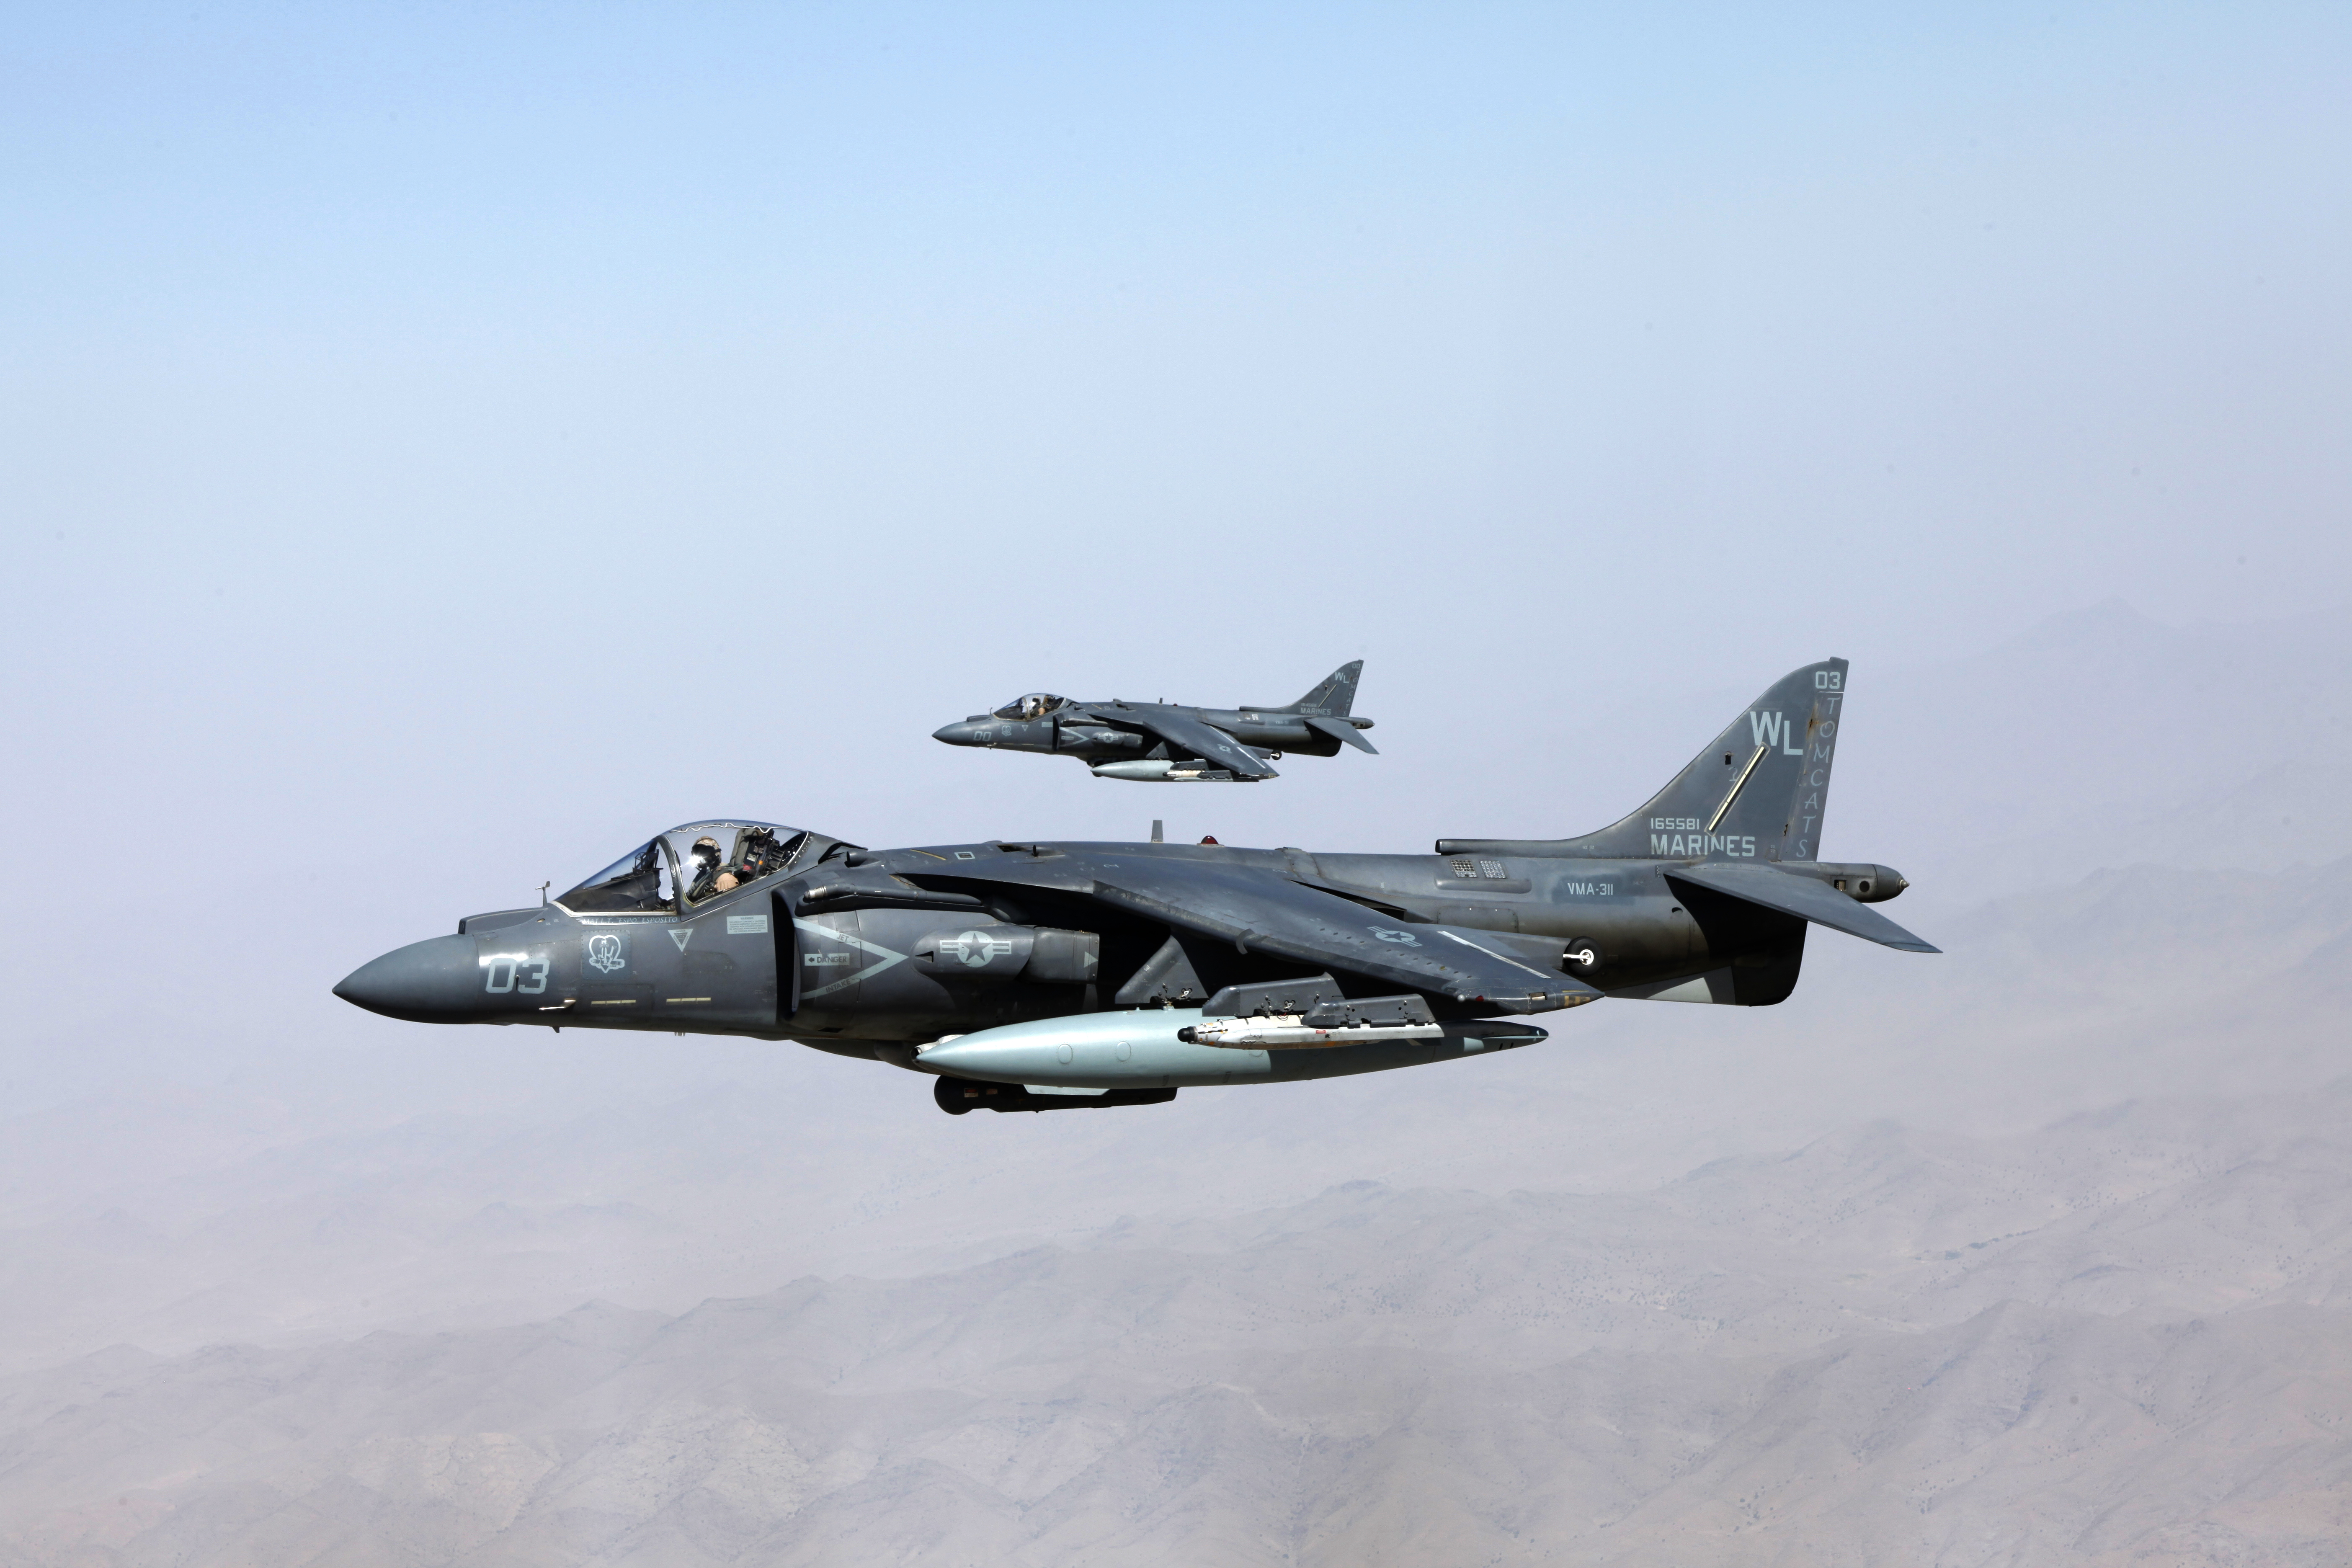 File:U.S. Marine Corps AV-8B Harrier aircraft assigned to ...